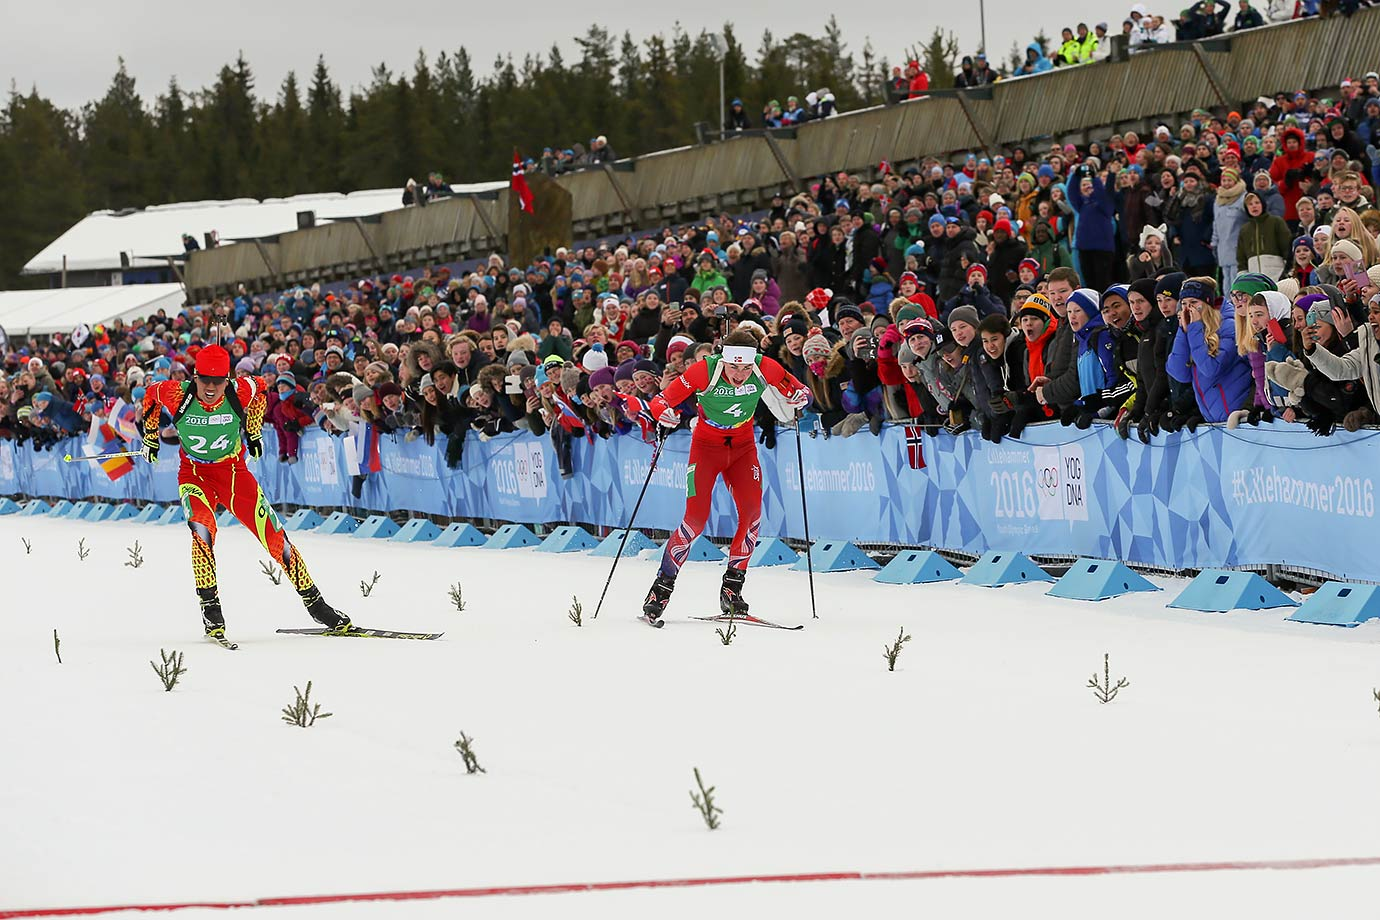 Zhenyu Zhu (CHN) crosses the line to take the Gold Medal ahead of Fredrik Qvist Bucher-Johanessen (NOR) in the Single Mixed Biathlon Relay at the Birkebeineren Biathlon Stadium on Feb. 17, 2016 during the Winter Youth Olympic Games in Lillehammer, Norway.